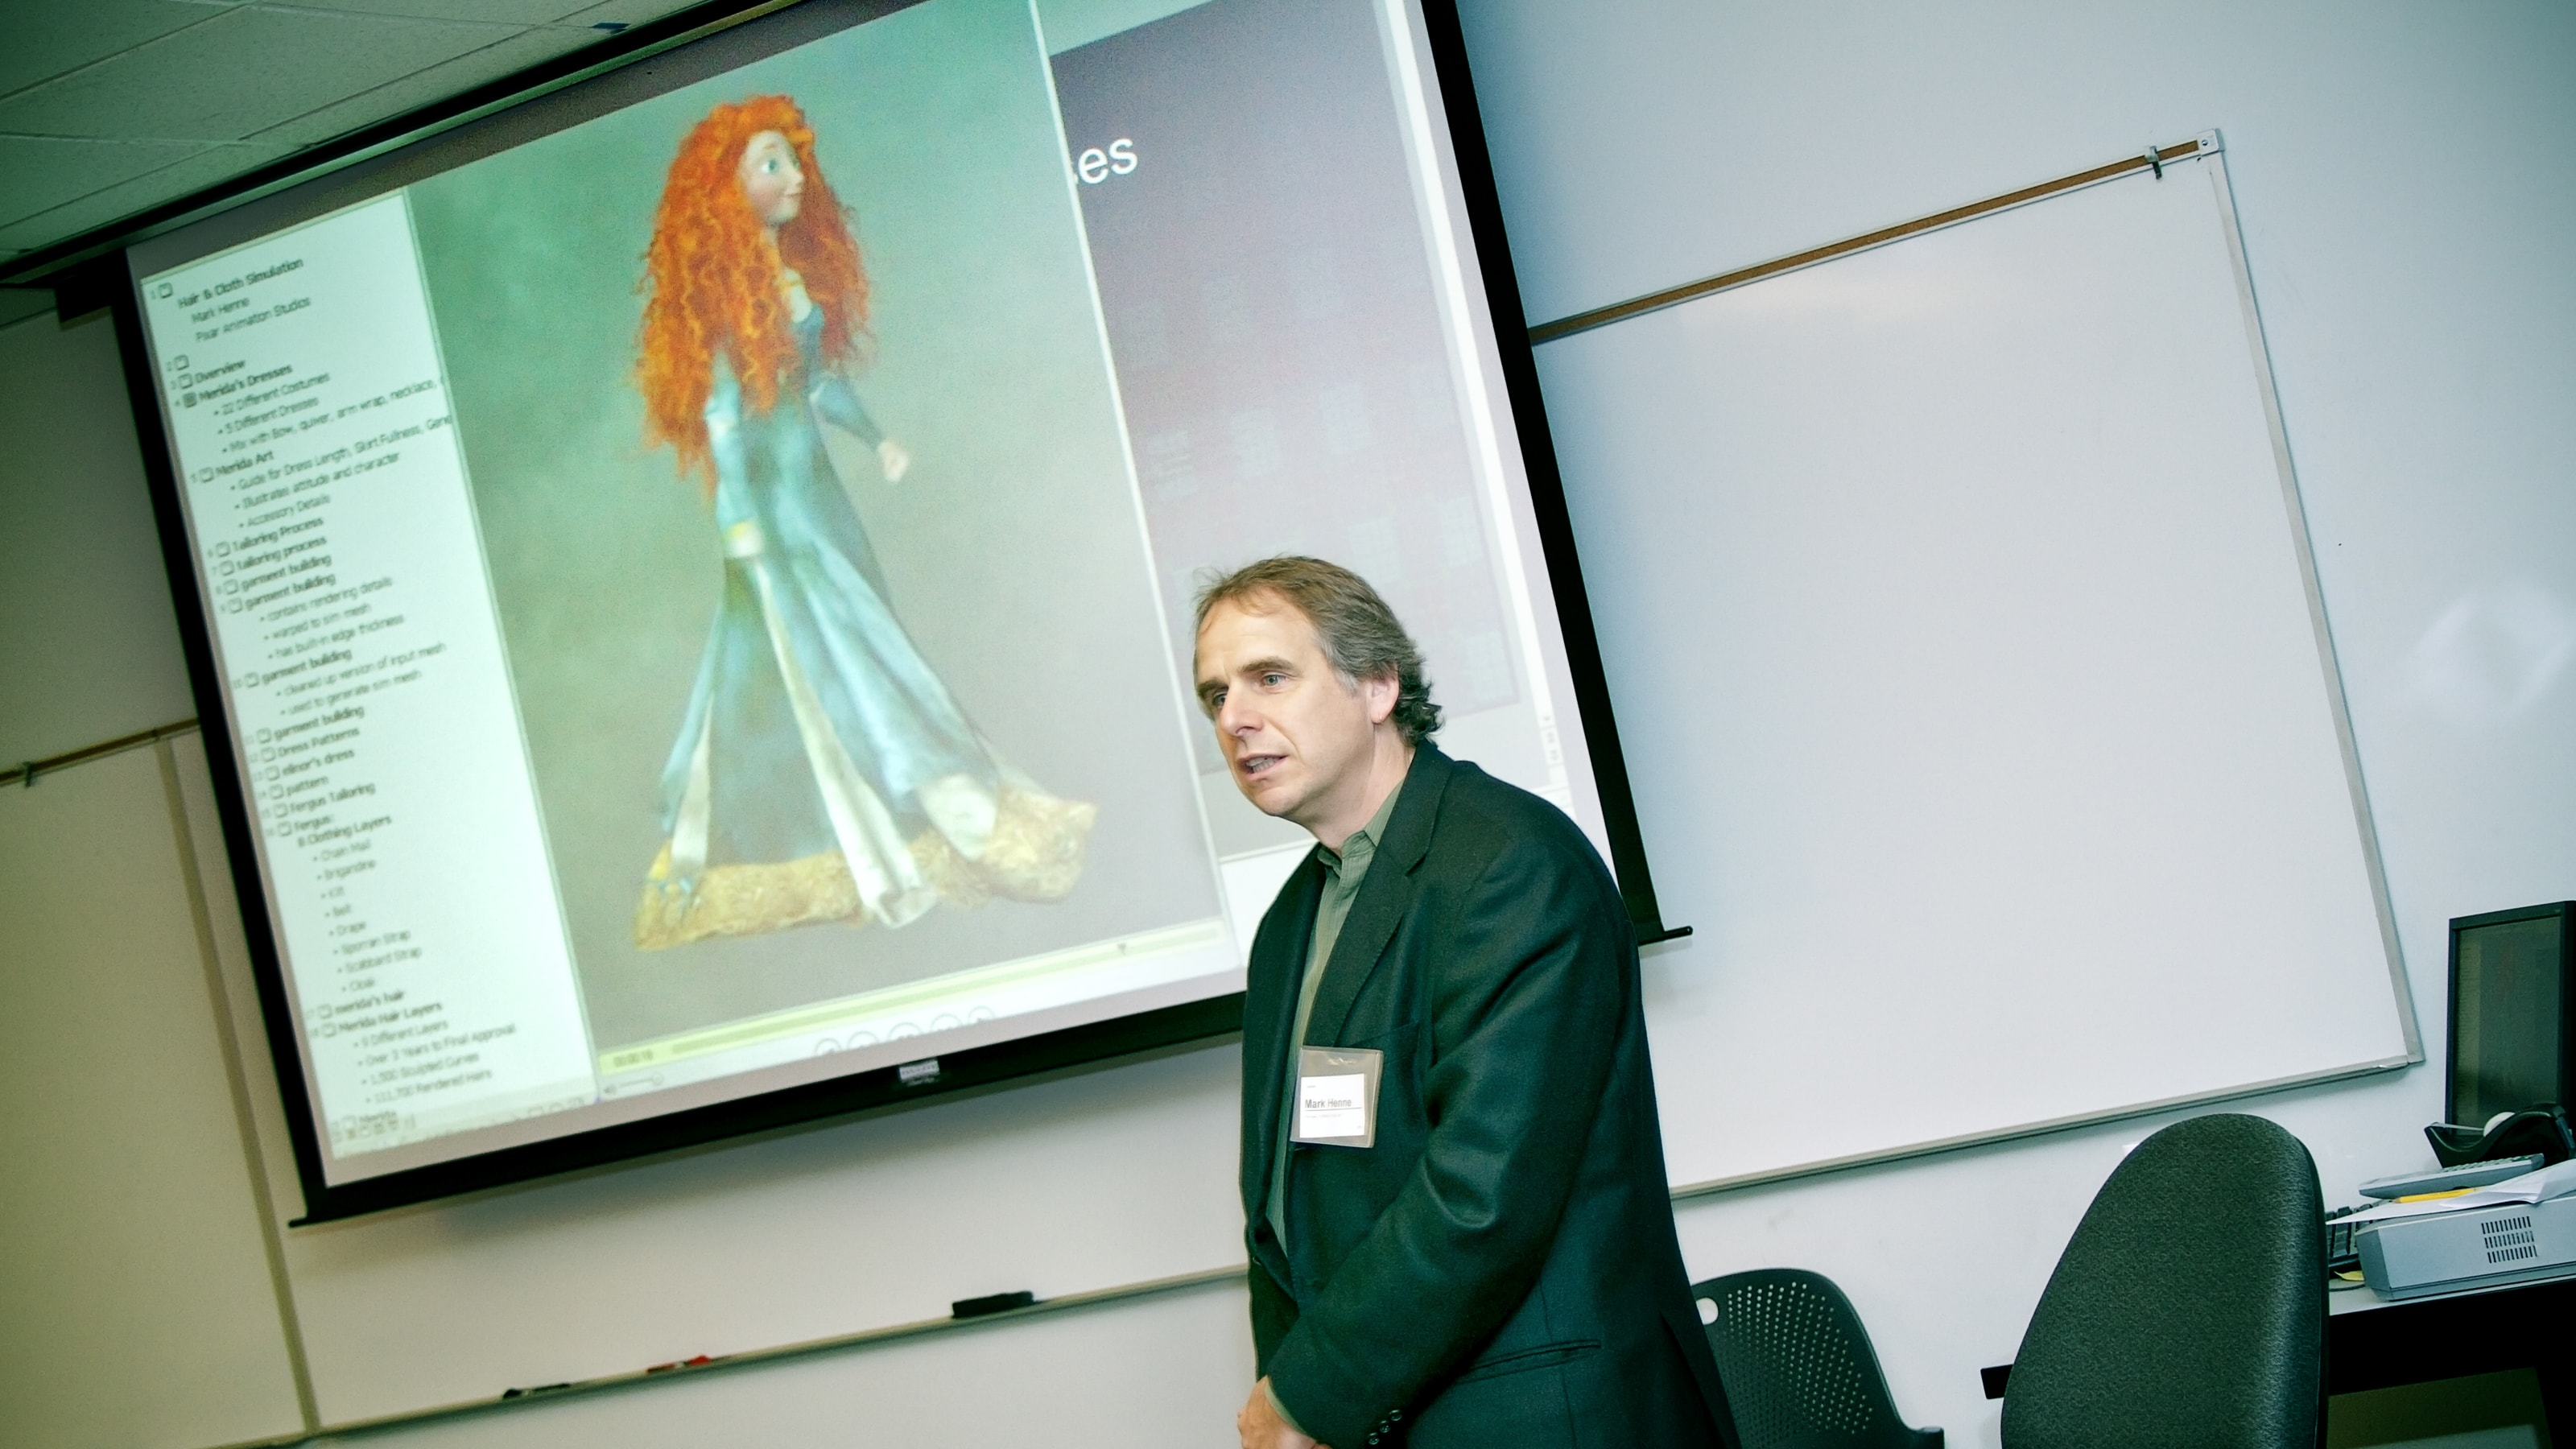 Pixar's Mark Henne speaking in front of a screen showing Princess Merida from the animated movie Brave